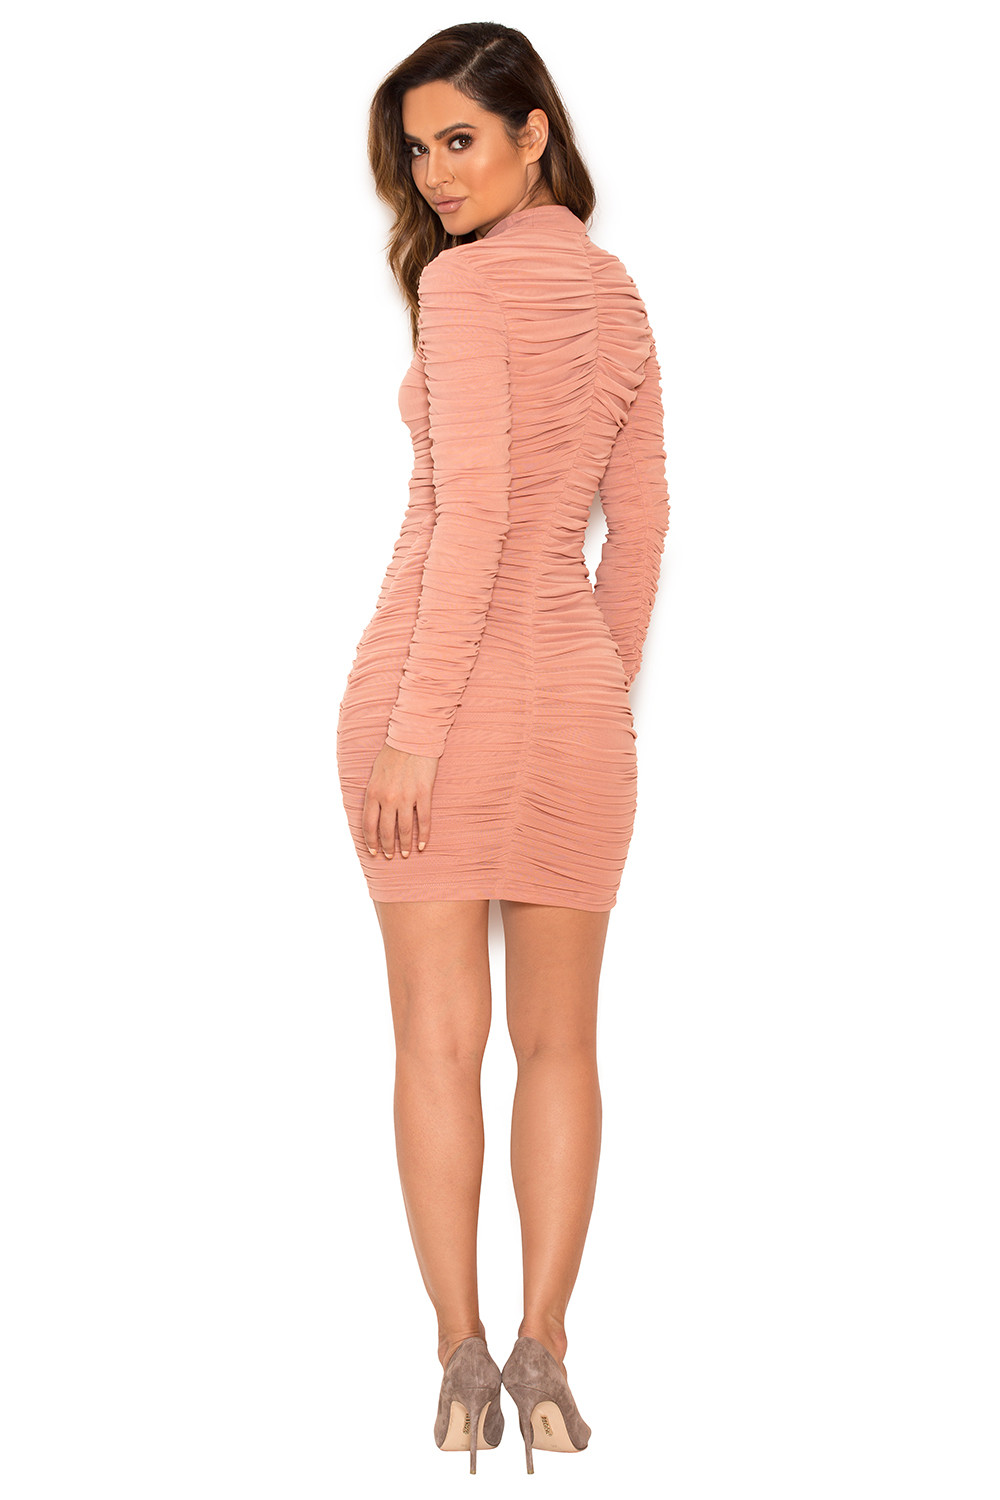 70cc5f435081 Clothing   Bodycon Dresses    Soleil  Dusty Pink Ruched Mesh BodyCon ...